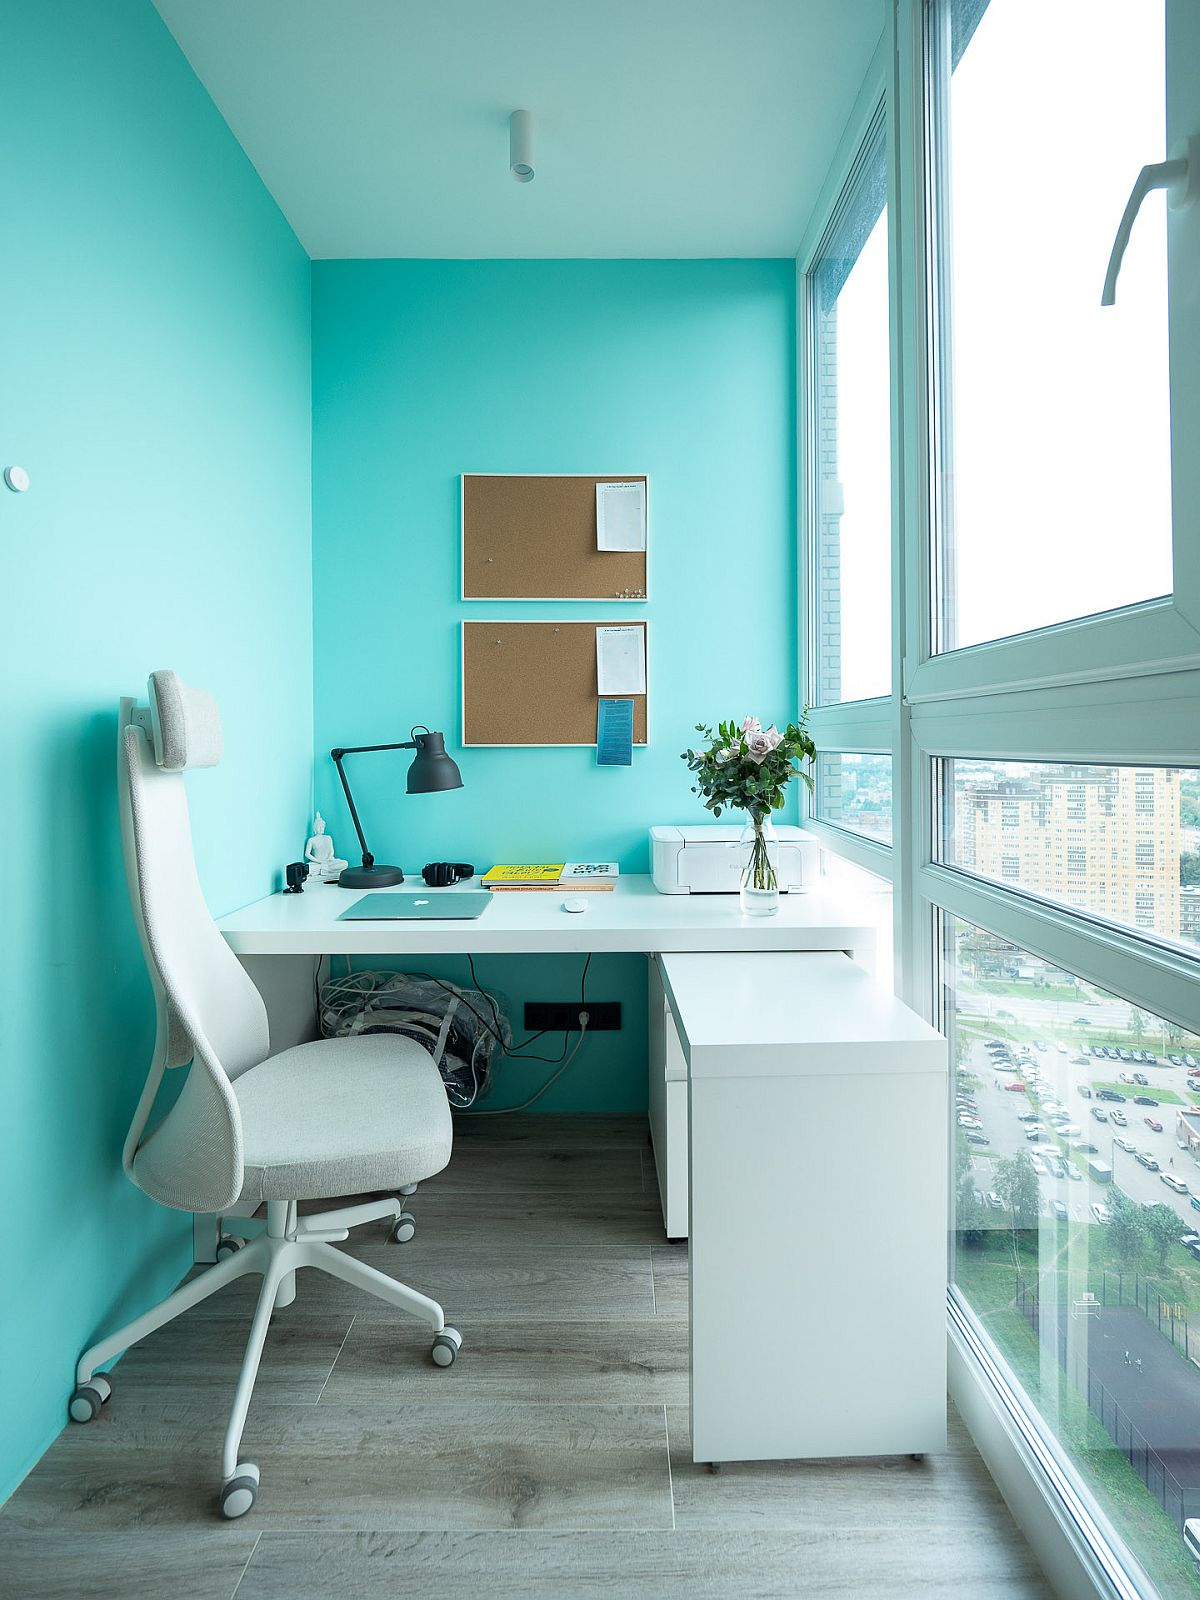 Tiny-home-office-of-Moscow-apartment-with-lovely-blue-walls-along-with-floor-to-ceiling-glass-walls-52533